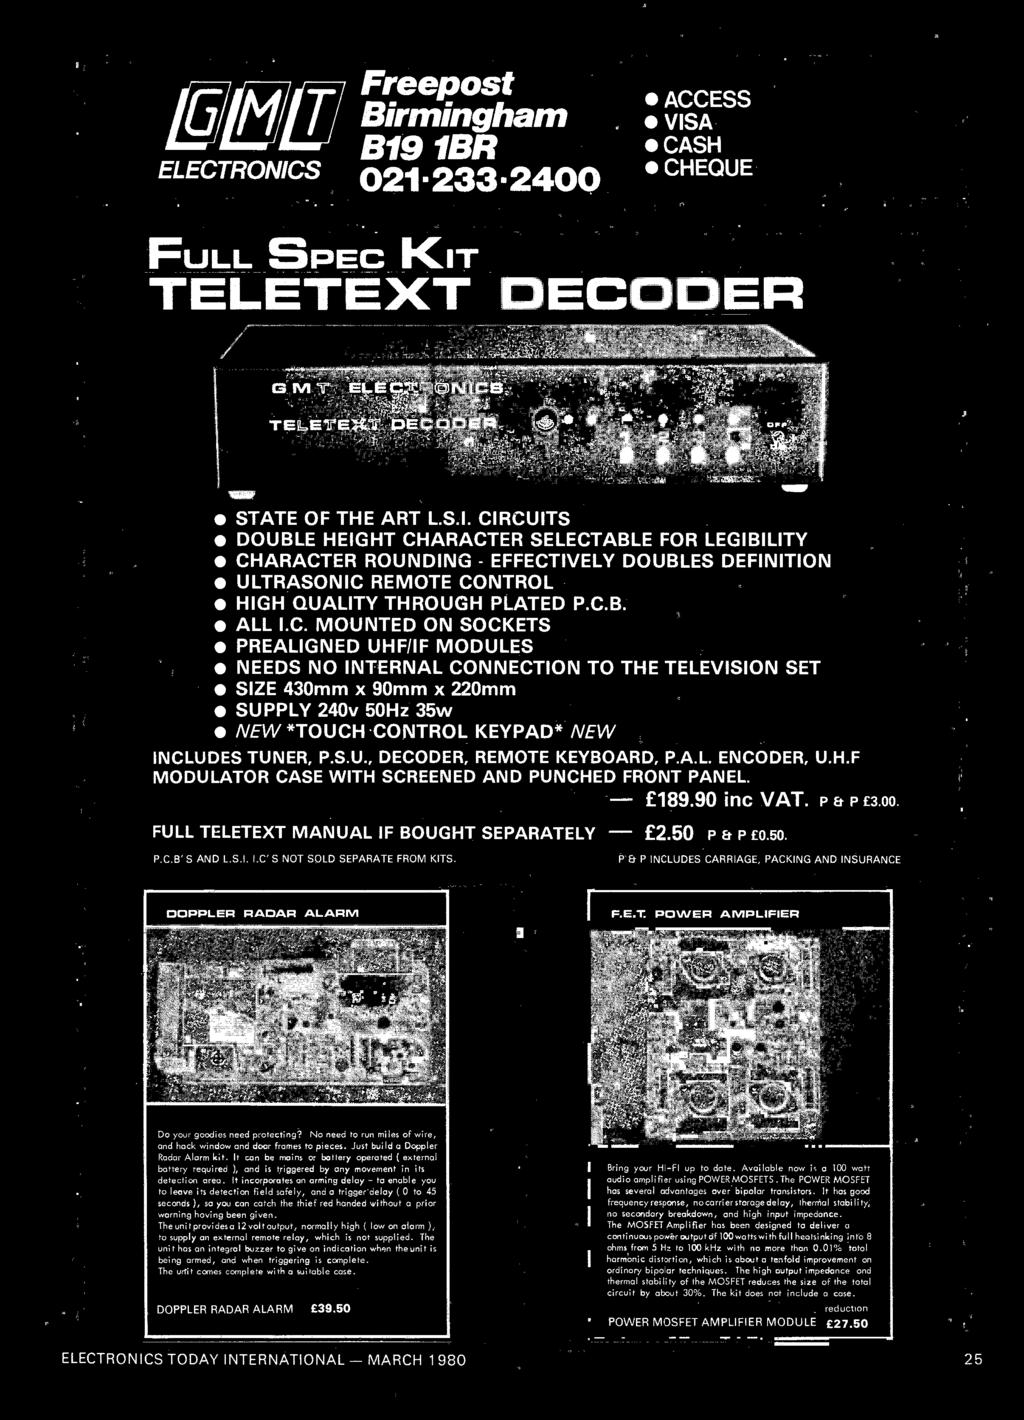 And Pitch Sweep Control A Noise Generator An Detector New Lowcostcoppercladsrbpcircuitboard Cb All Ic Mounted On Sockets Prealigned Uhf If Modules Needs No Internal Connection To